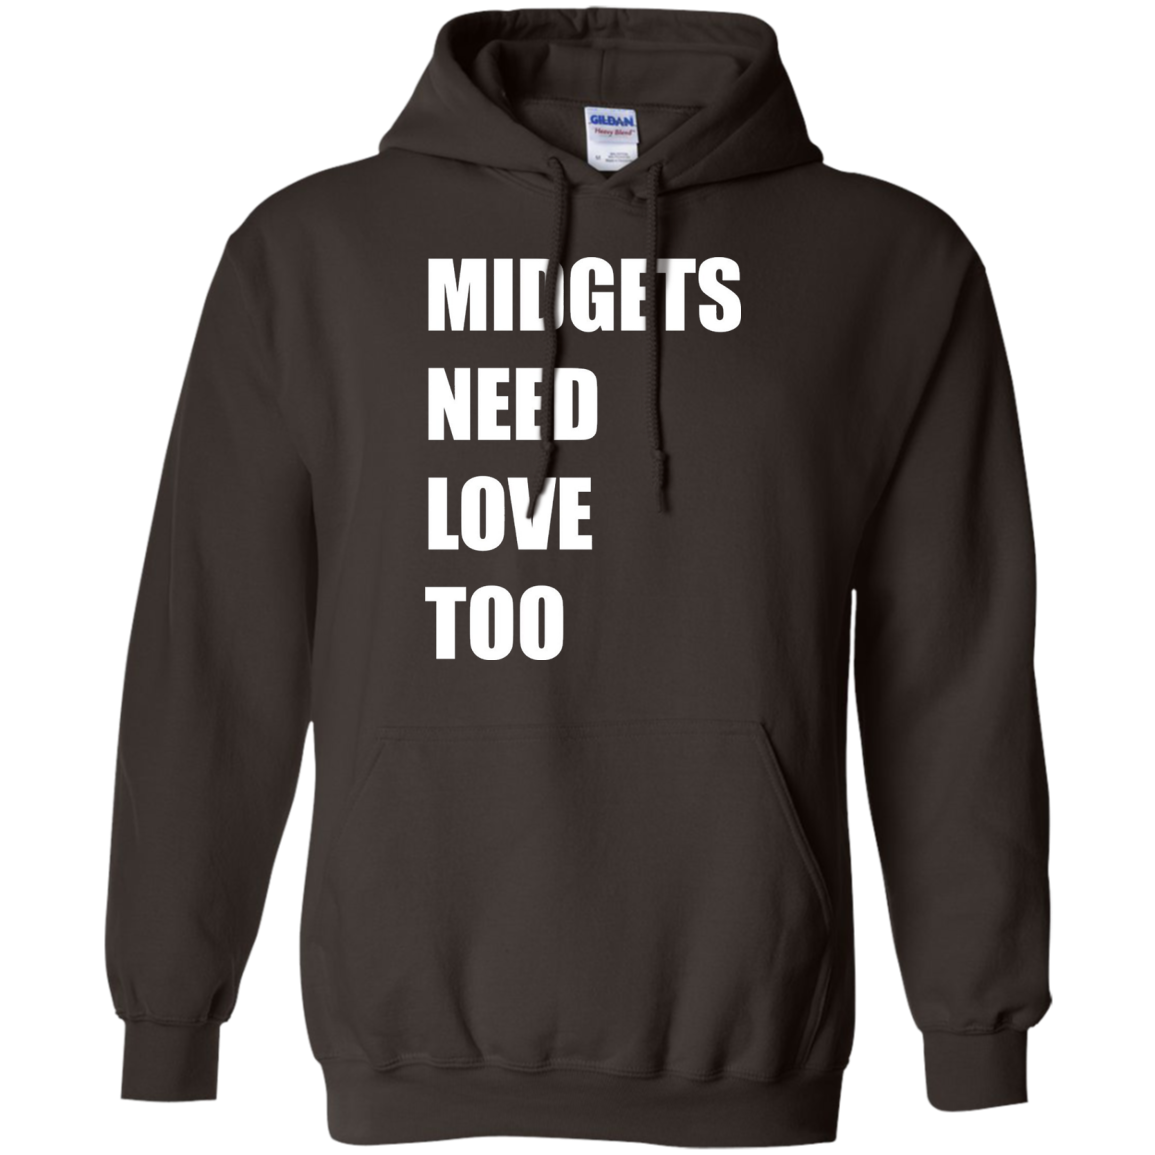 Midgets Need Love Too T-Shirt